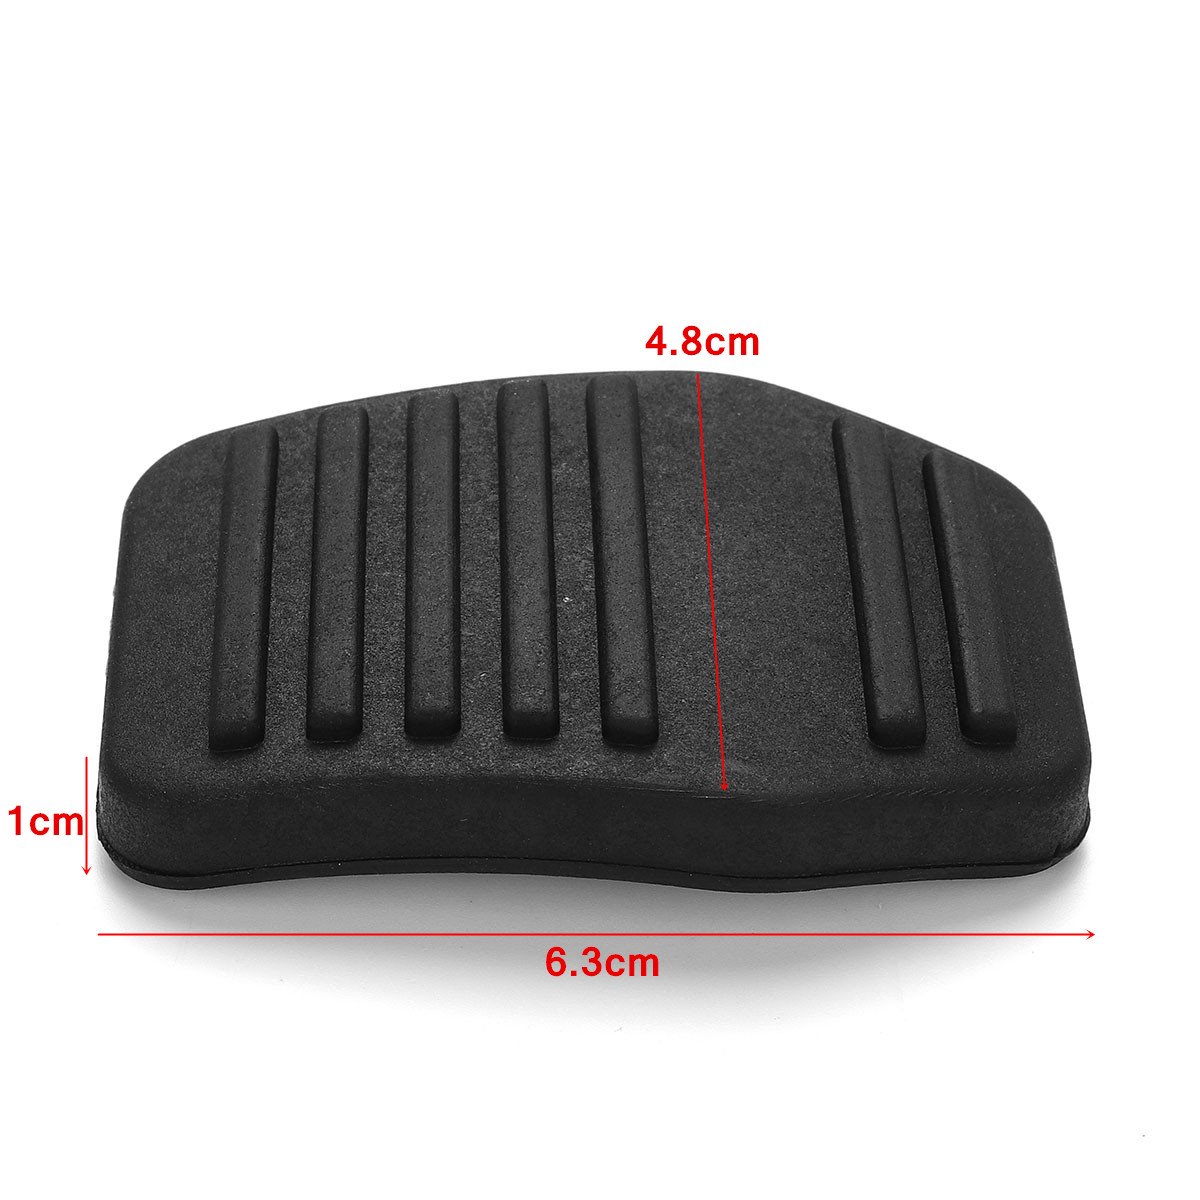 2Pcs Rubber Non-slip Car Pedal Pad Brake & Clutch Protector Cover for Ford Transit MK6 MK7